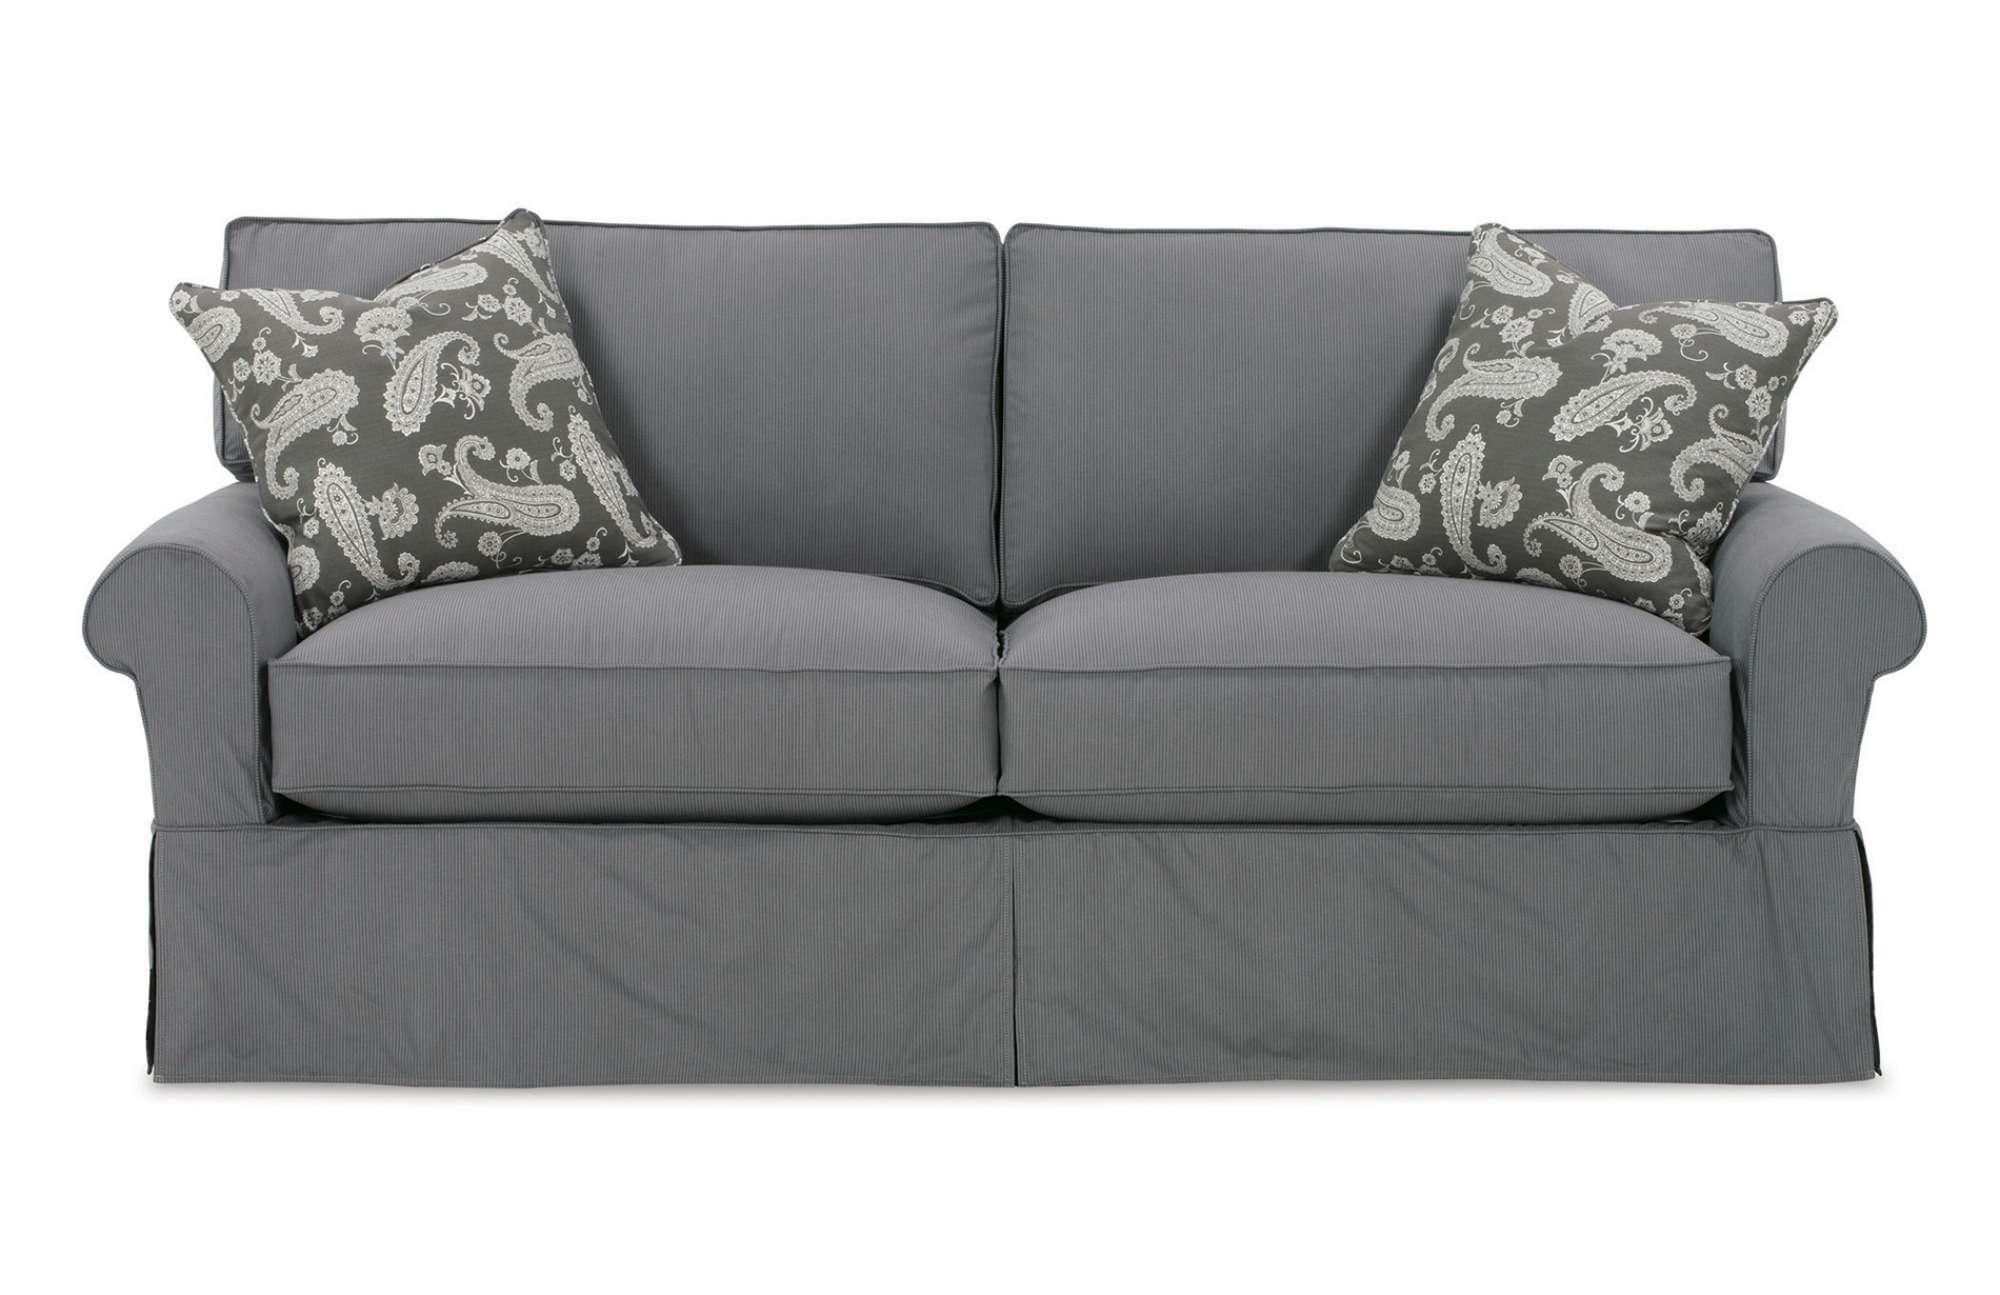 Beautiful Sleeper Sofa Slipcover 28 In Sofas And Couches Set With With Regard To Slipcovers For Sleeper Sofas (Image 1 of 20)